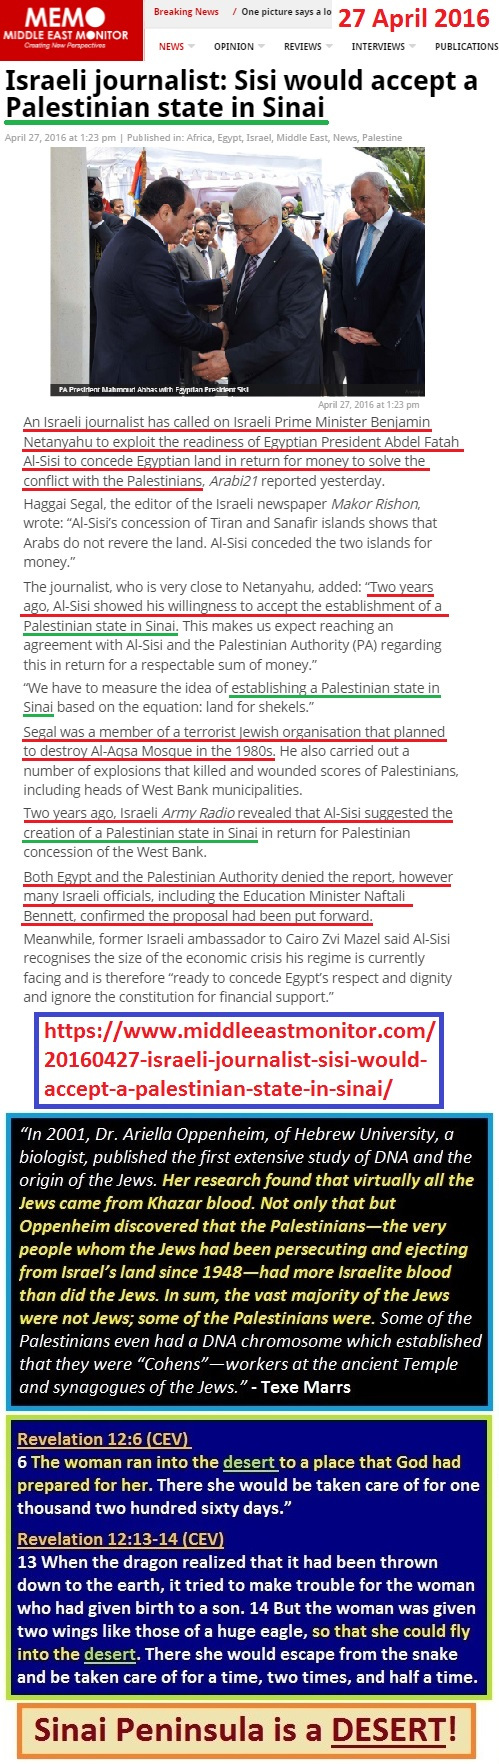 https://www.middleeastmonitor.com/20160427-israeli-journalist-sisi-would-accept-a-palestinian-state-in-sinai/